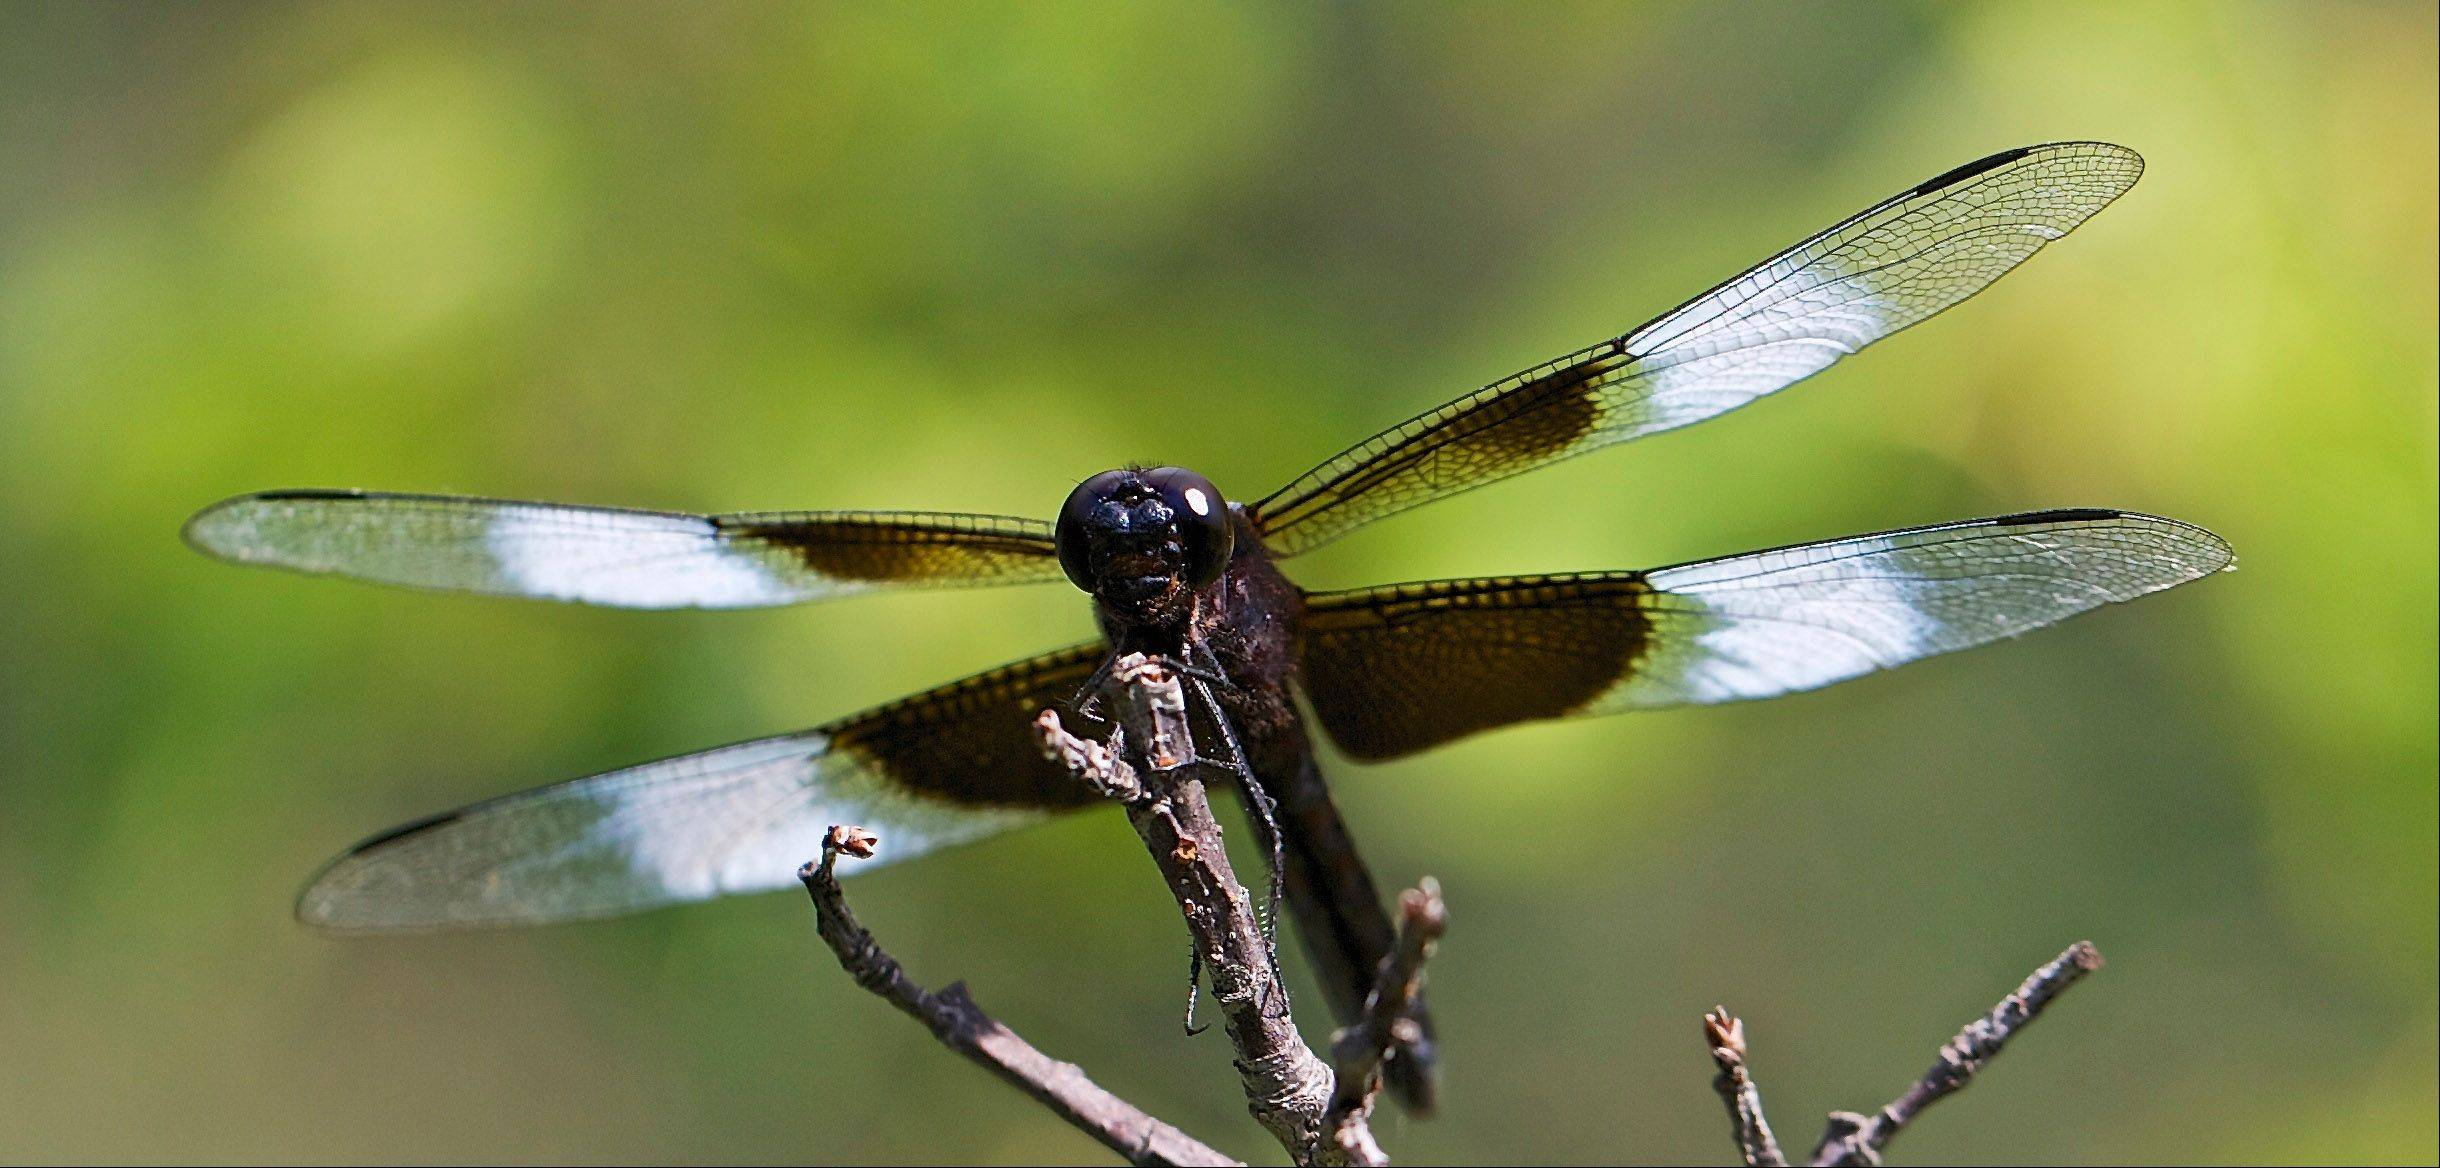 A dragonfly lands on a twig in Ingleside on July 31.